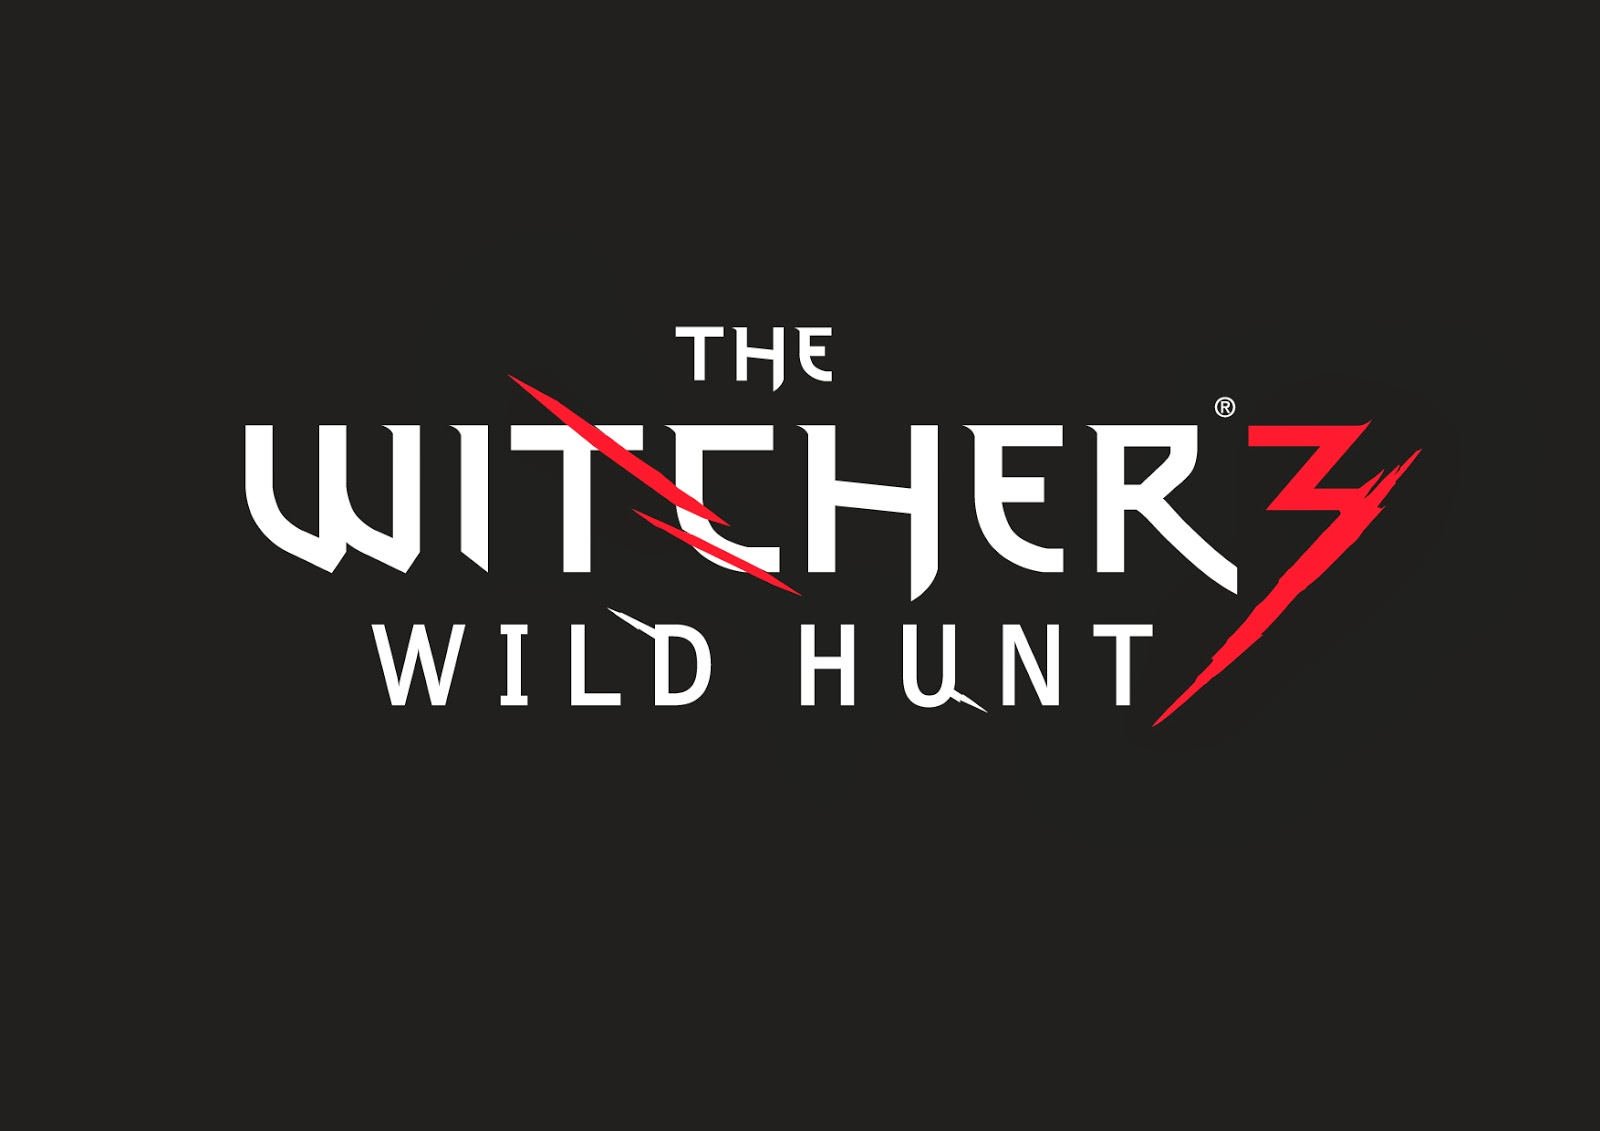 Bandai Namco to Release a Game of the Year Edition for The Witcher 3: Wild Hunt